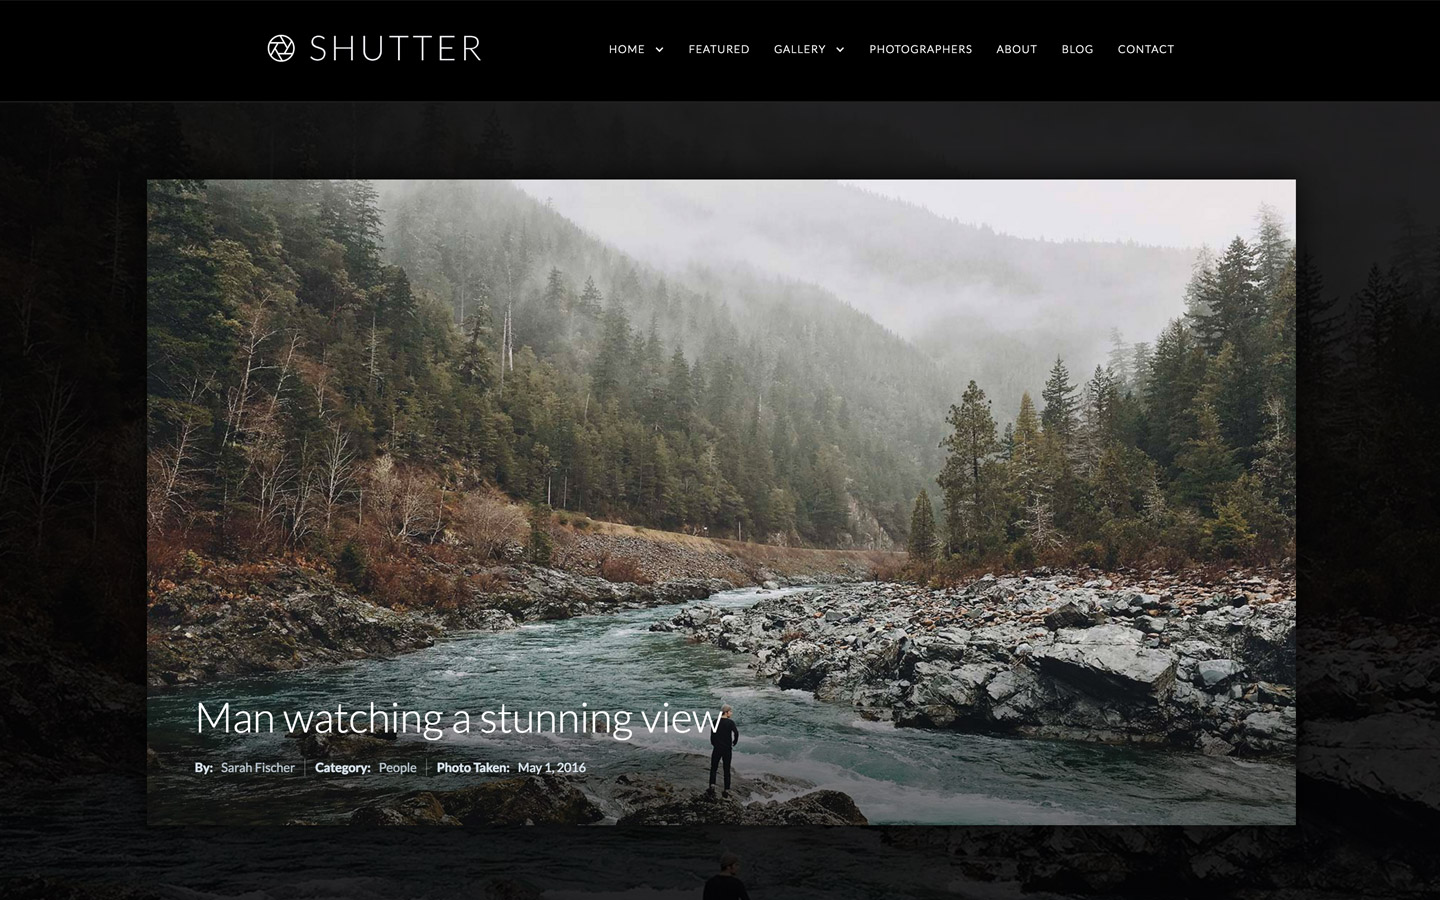 Shutter portfolio website template